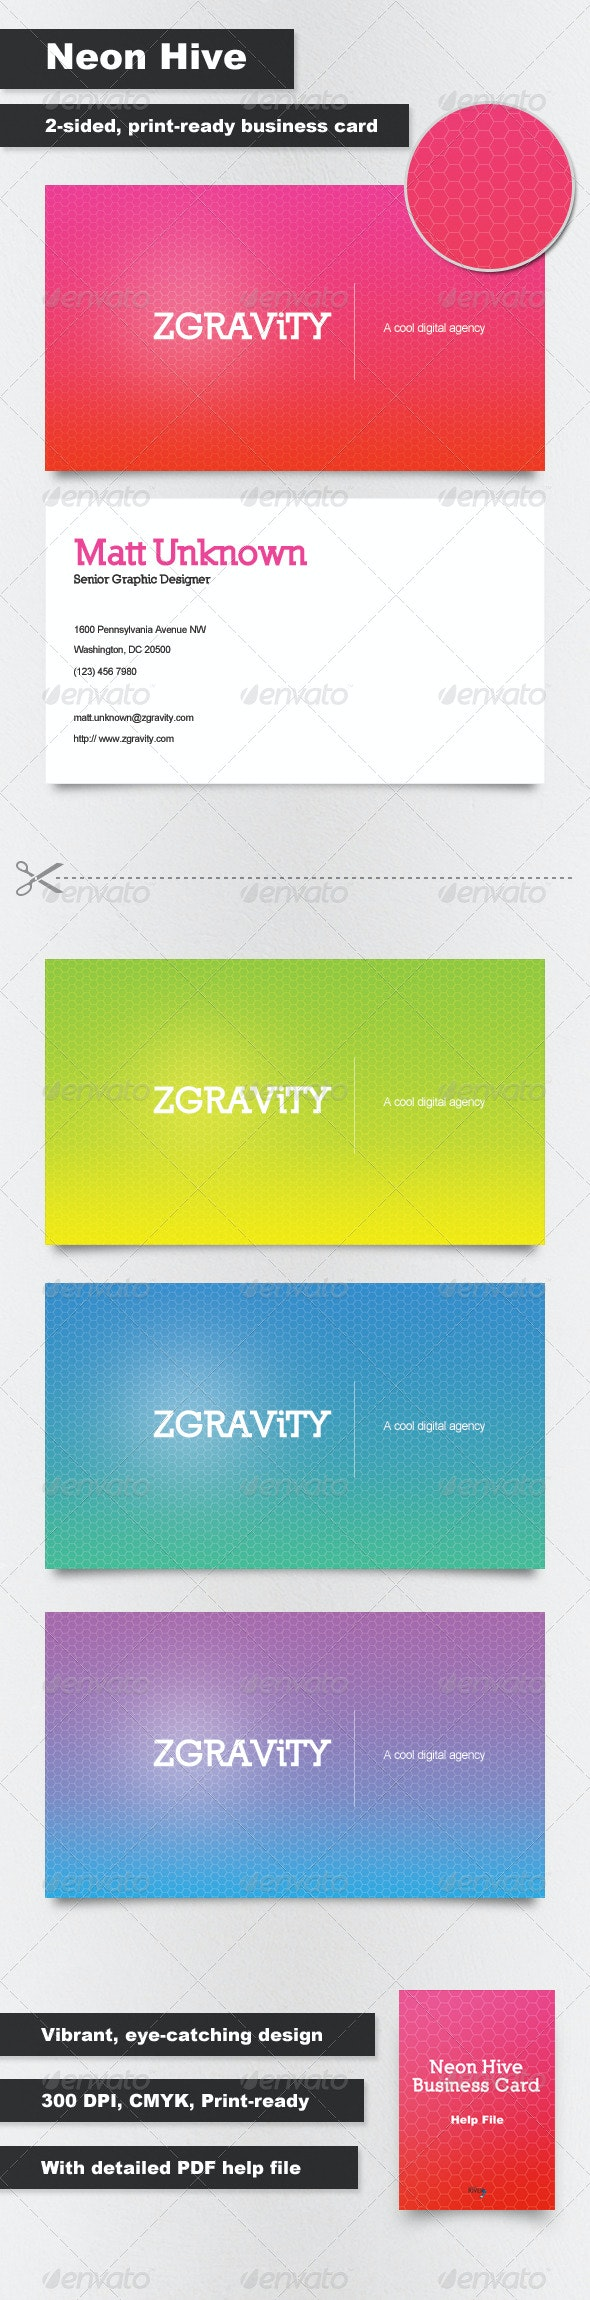 Neon Hive Business Cards - Creative Business Cards